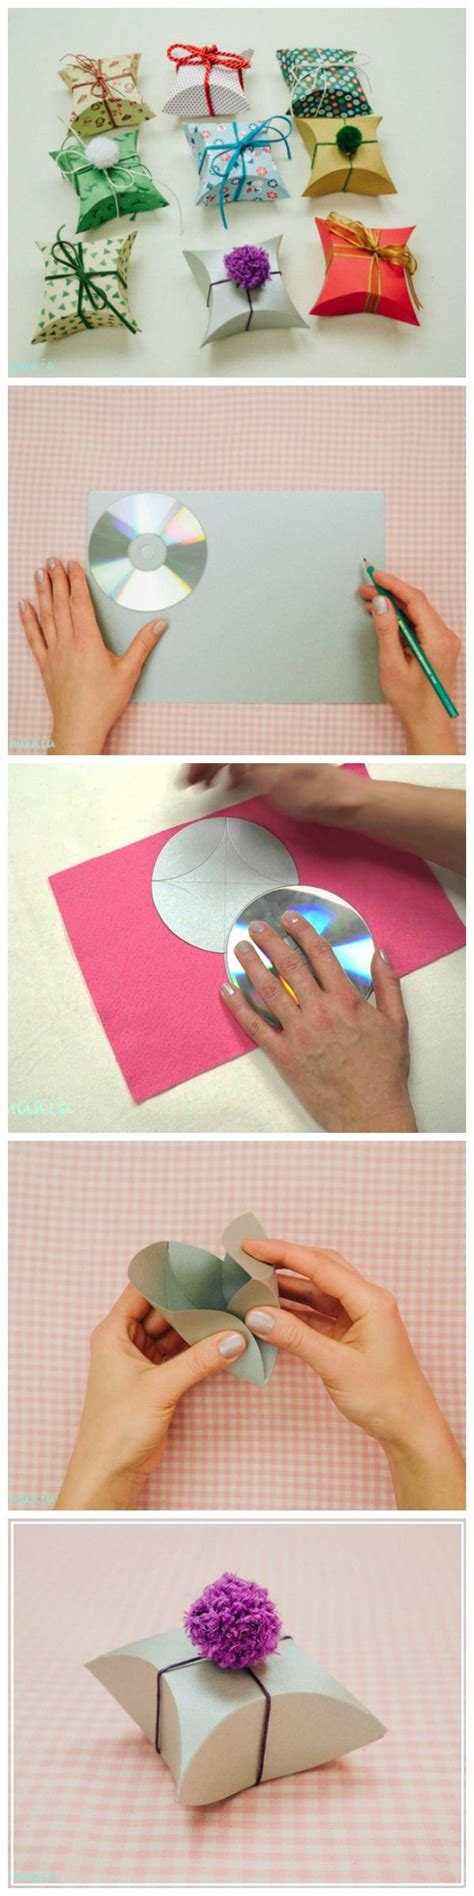 Gift Card Pillow Box Tutorial - best 25 diy gift box ideas on pinterest gift boxes diy box and diy gift wrap box